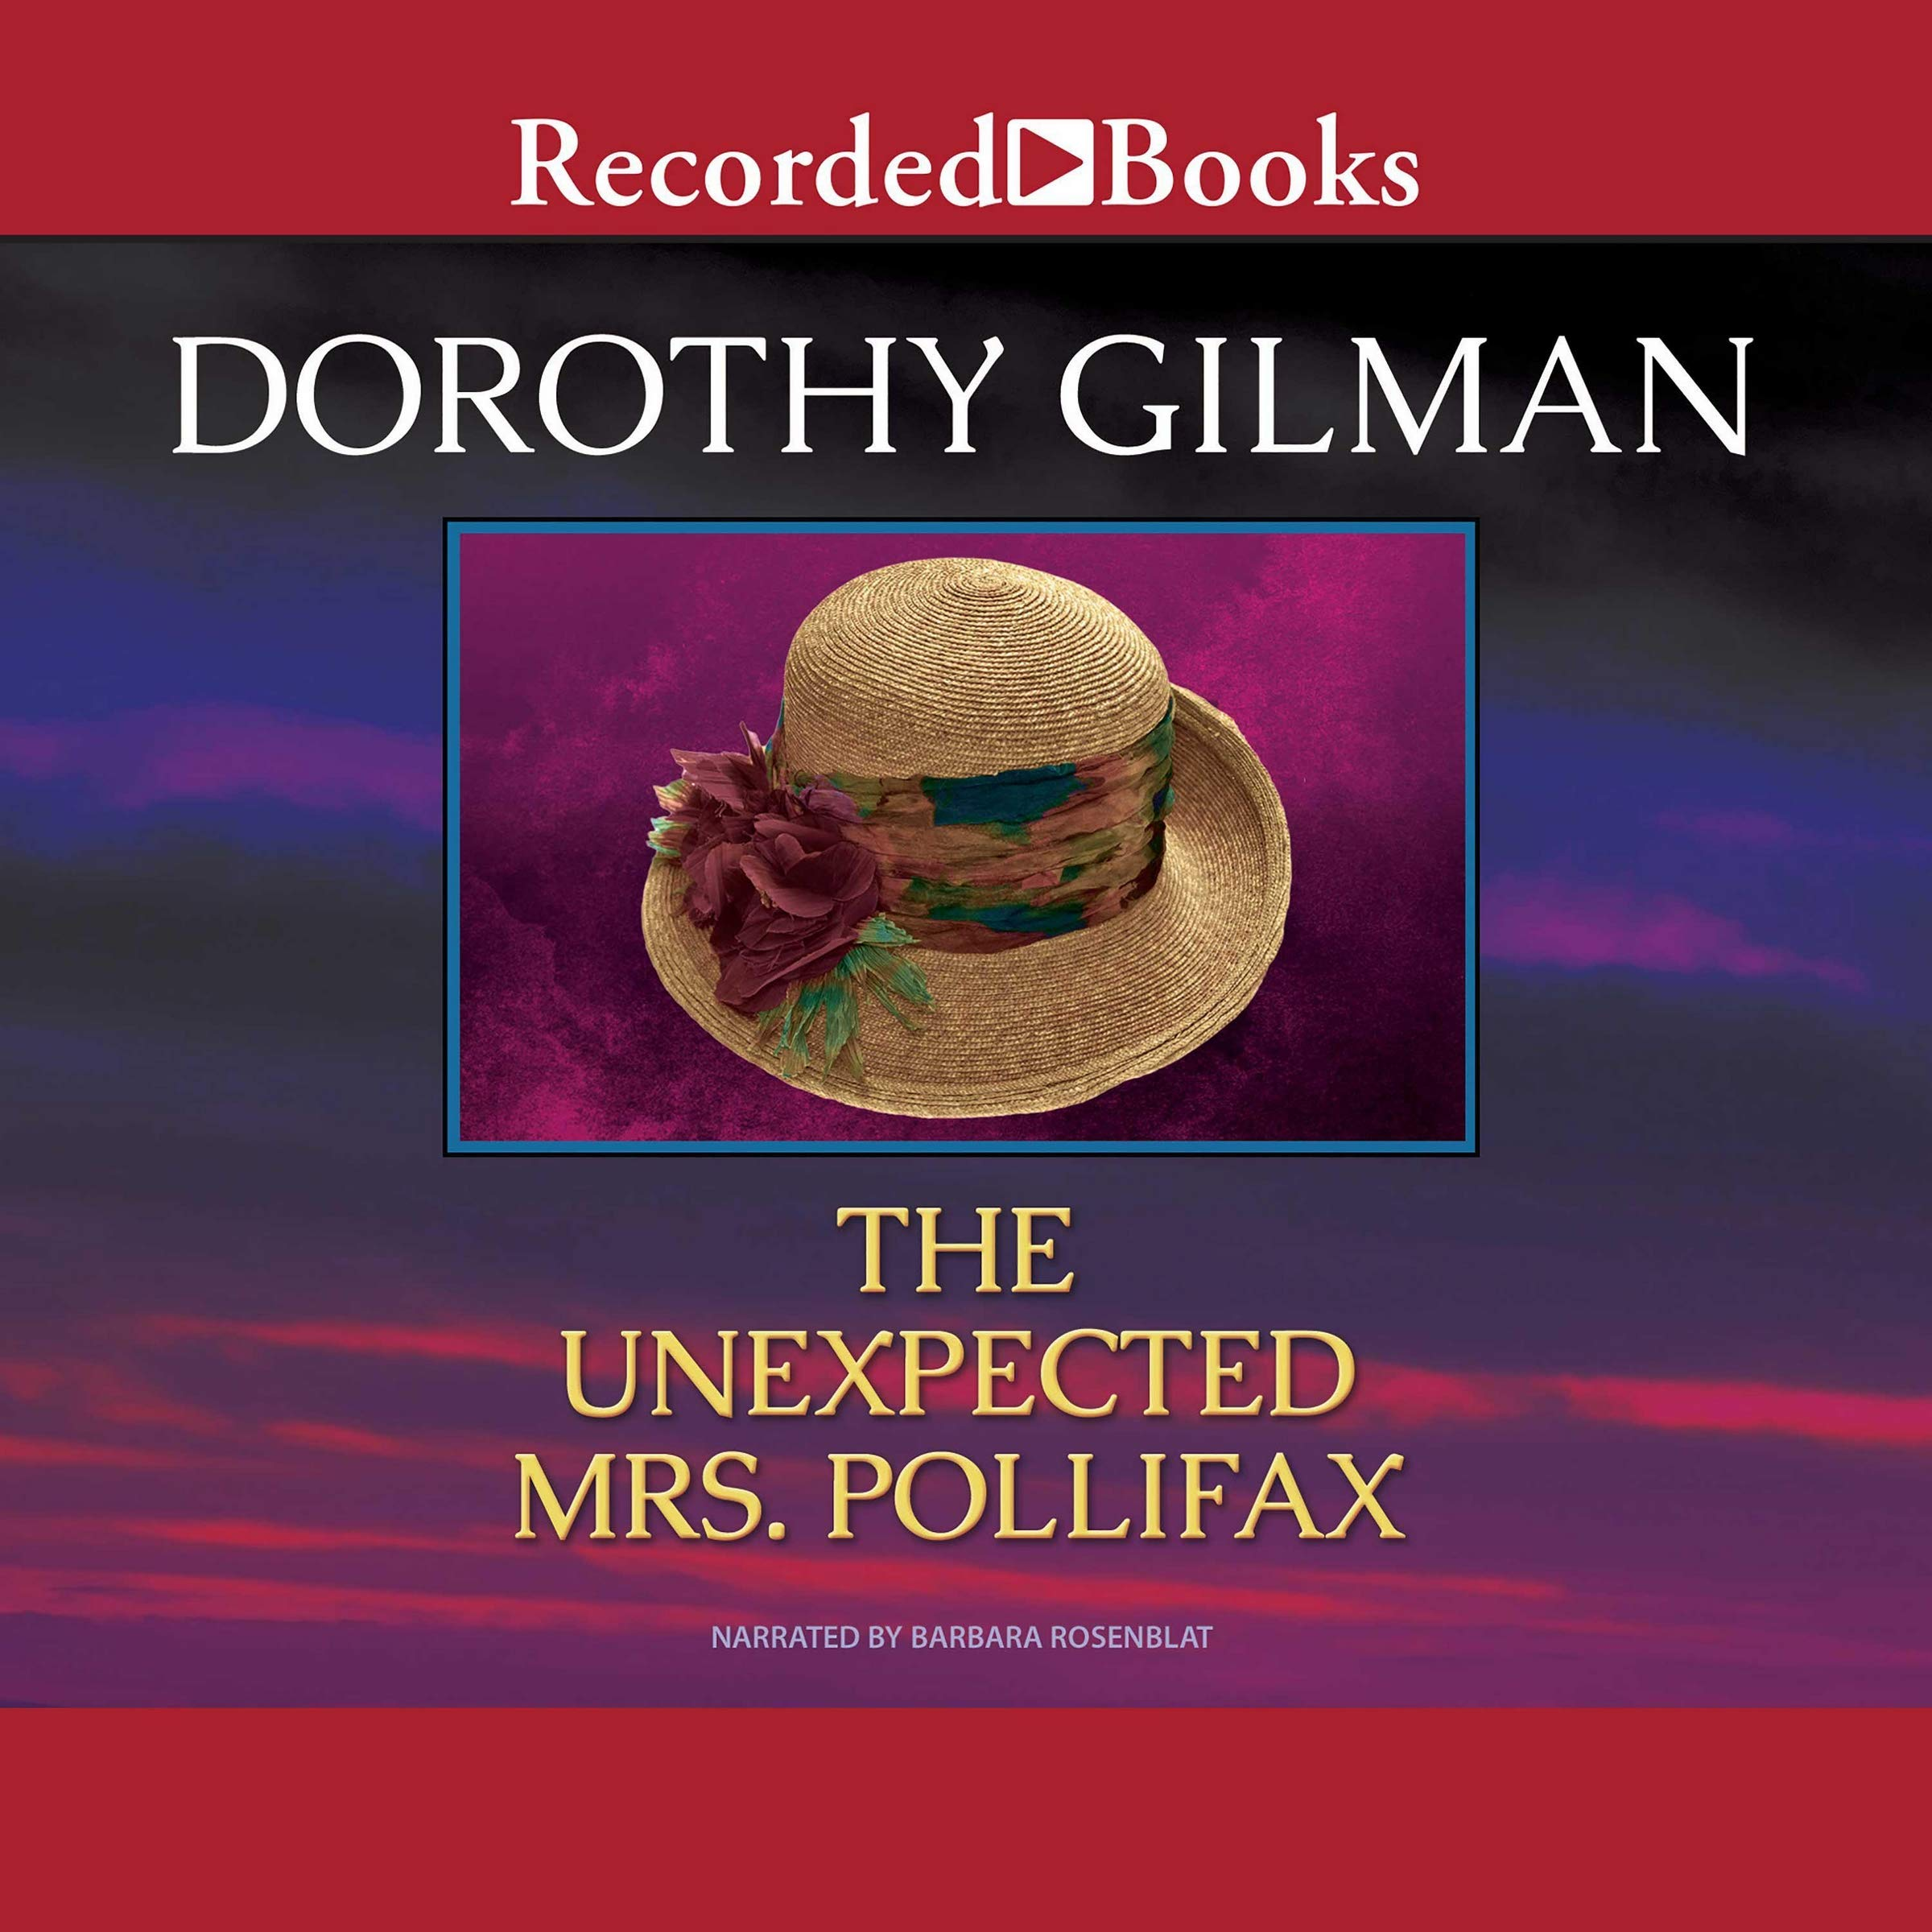 The Unexpected Mrs Pollifax The Mrs Pollifax Series Dorothy Gilman 9781664429222 Amazon Com Books